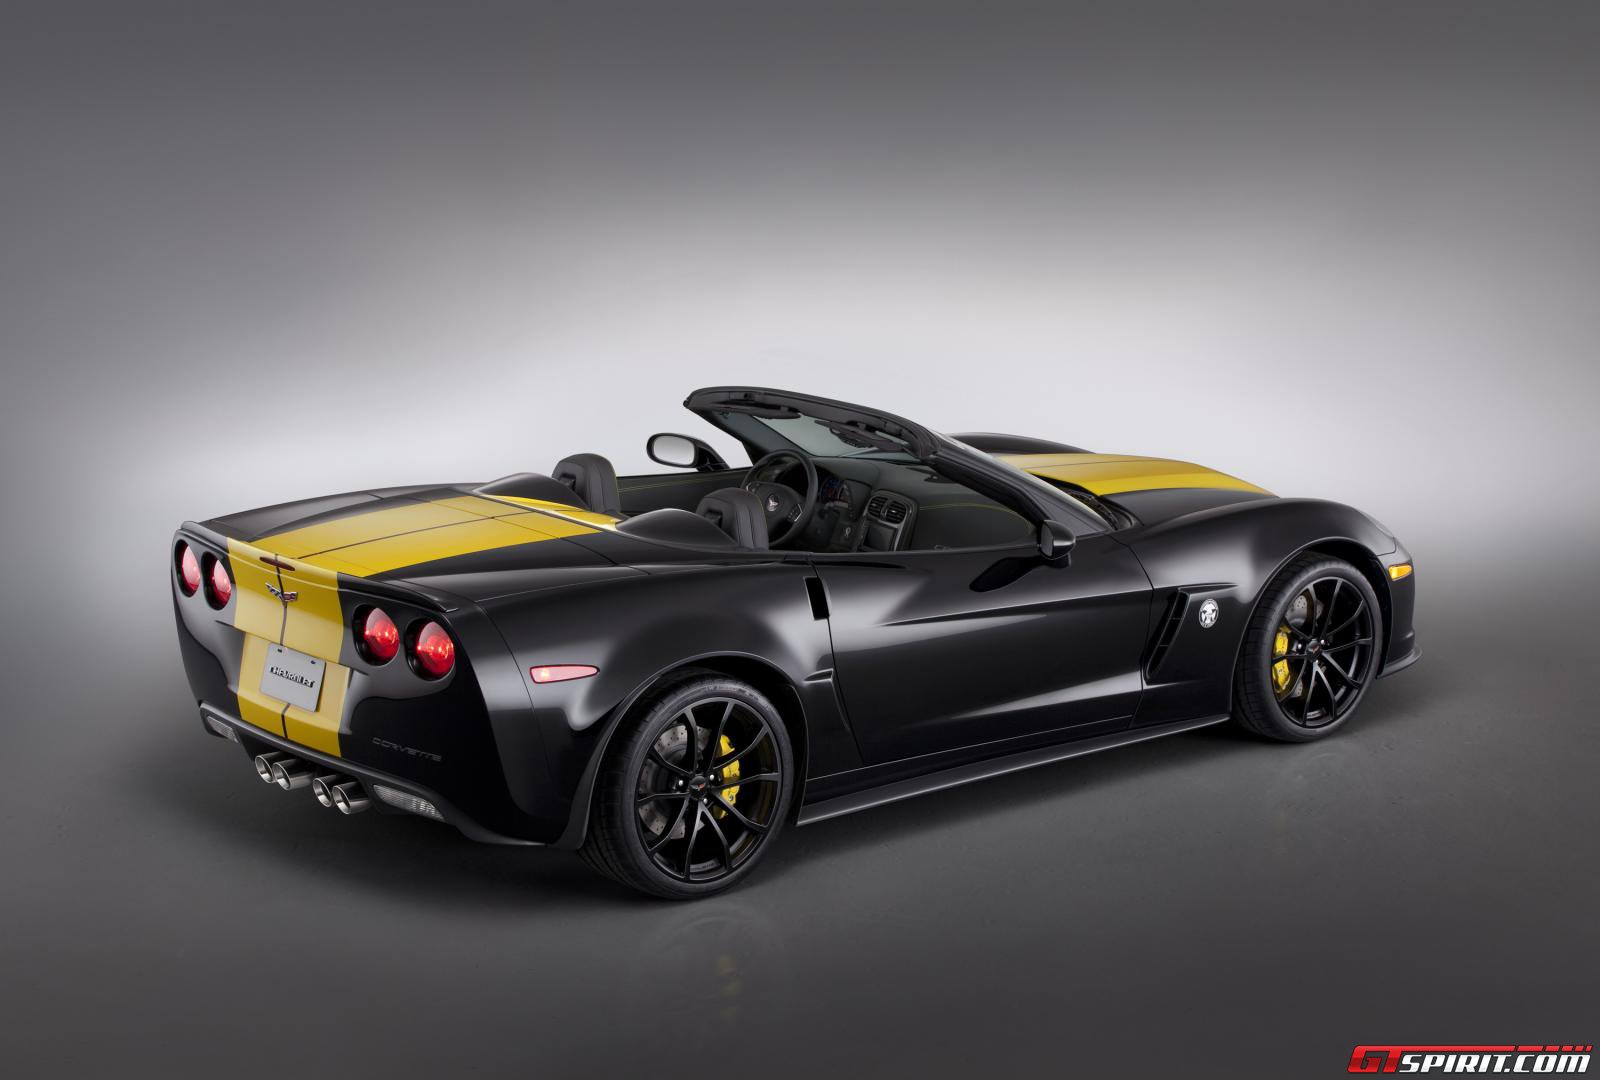 http://www.gtspirit.com/wp-content/gallery/large-number-of-chevrolet-models-released-at-sema-2012/14929611211211491431.jpg